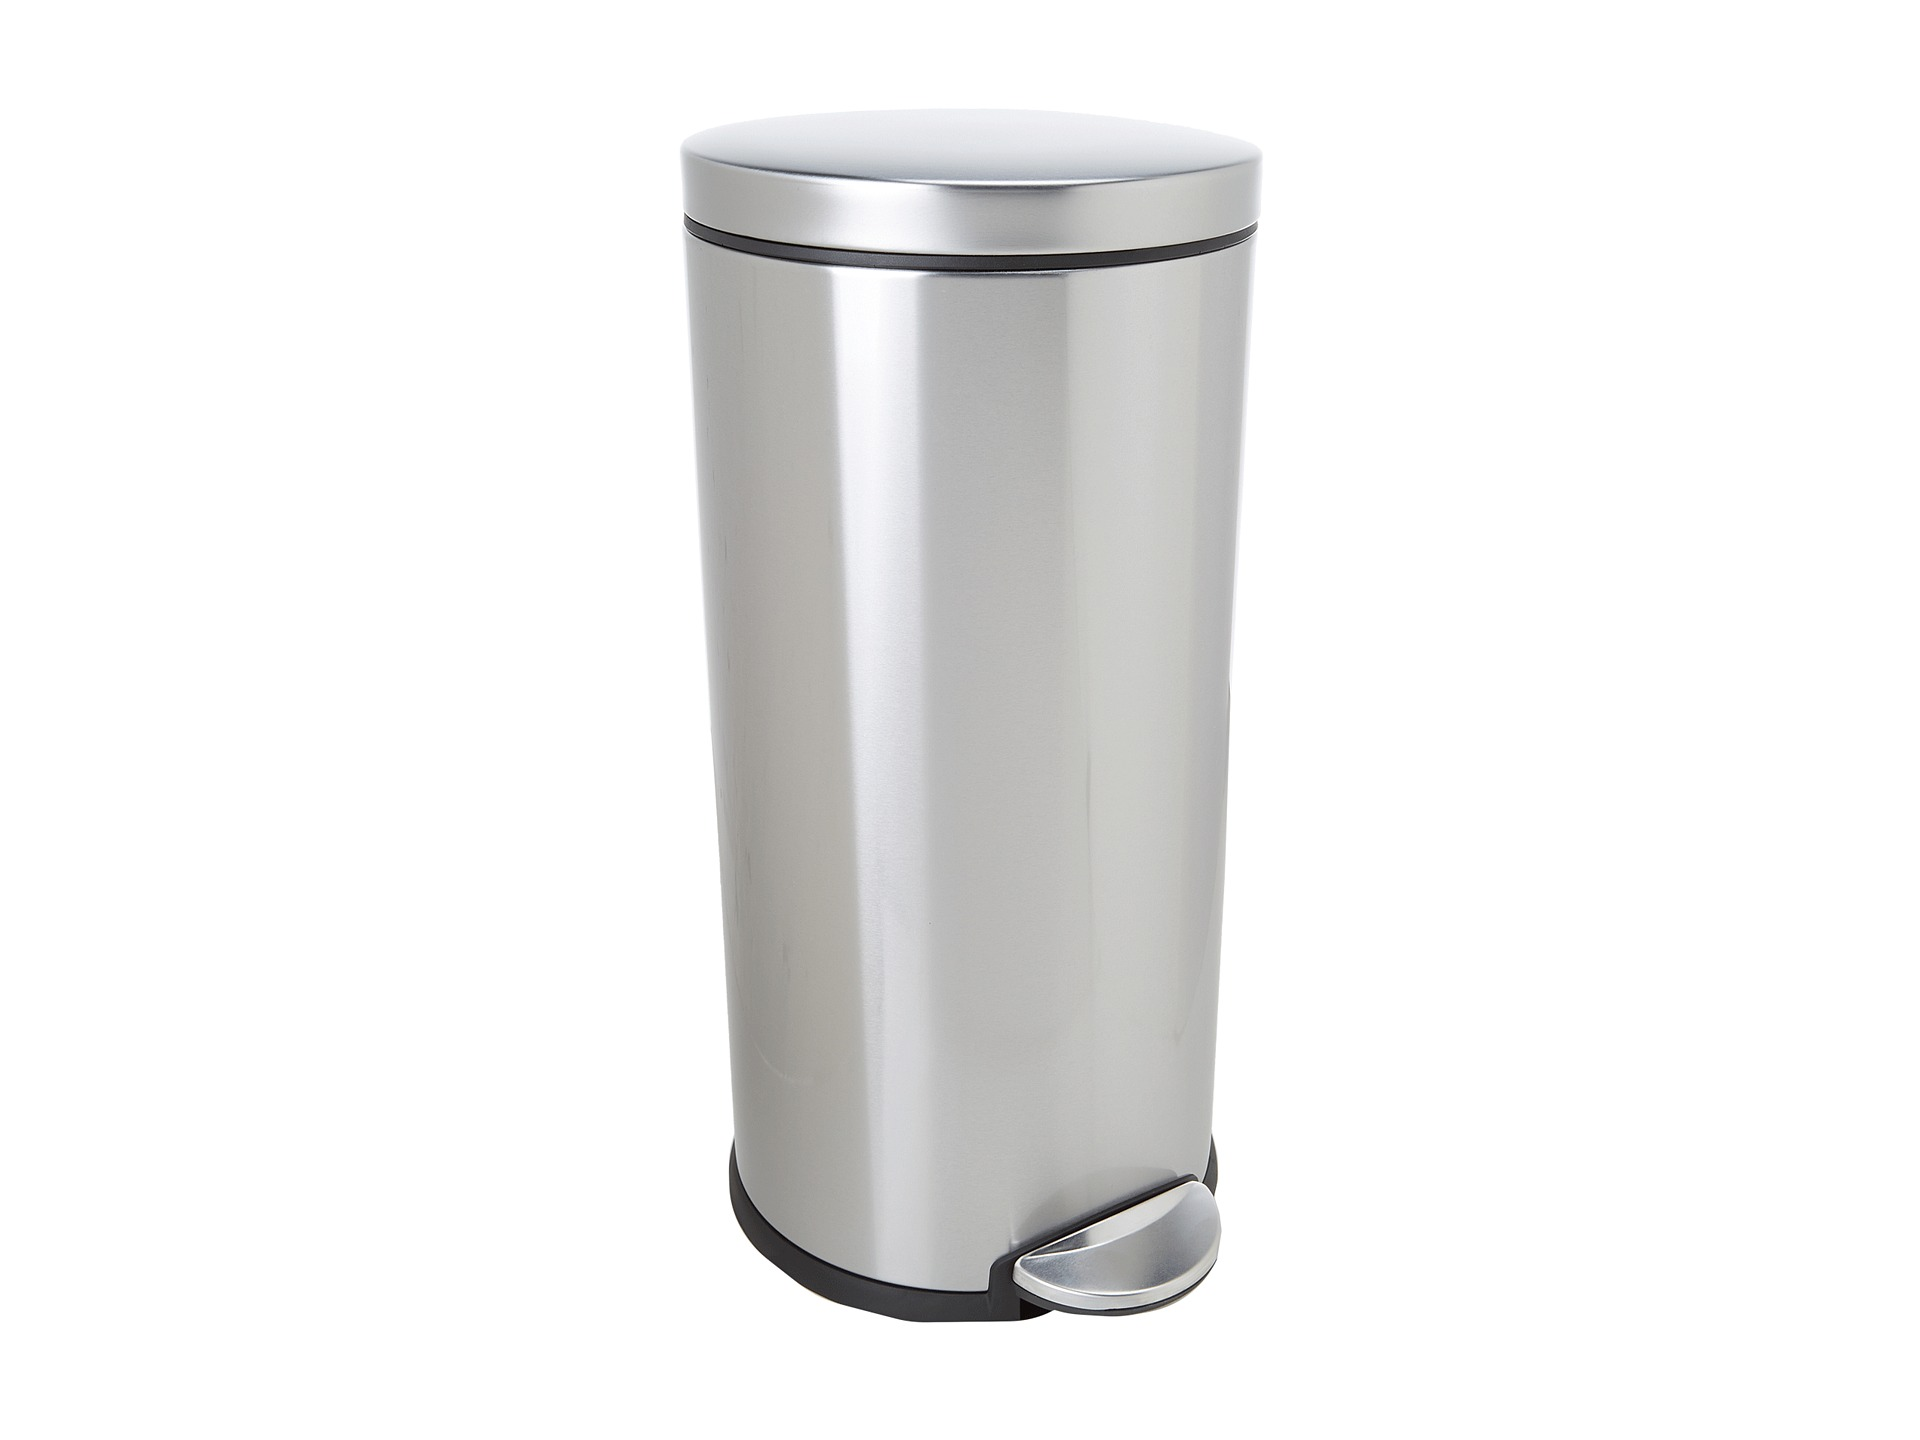 Corner Stainless Steel Trash Can Simplehuman 30l Round Step Trash Can Fingerprint Proof